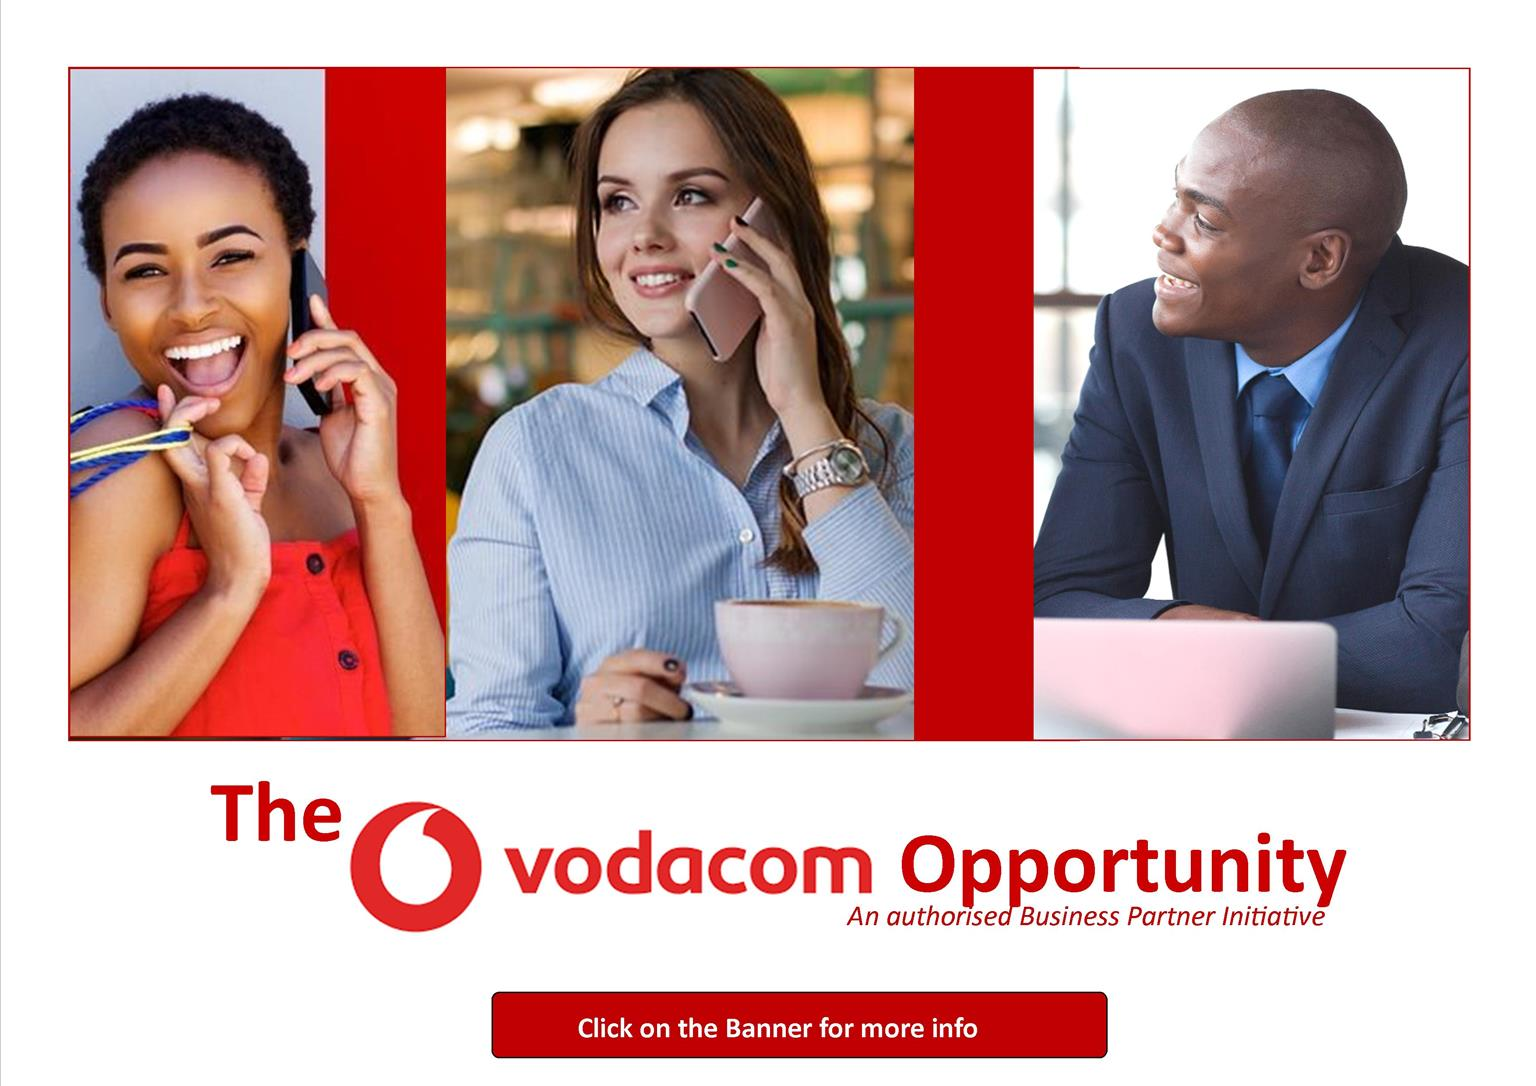 Vodacom Corporate Opportunity